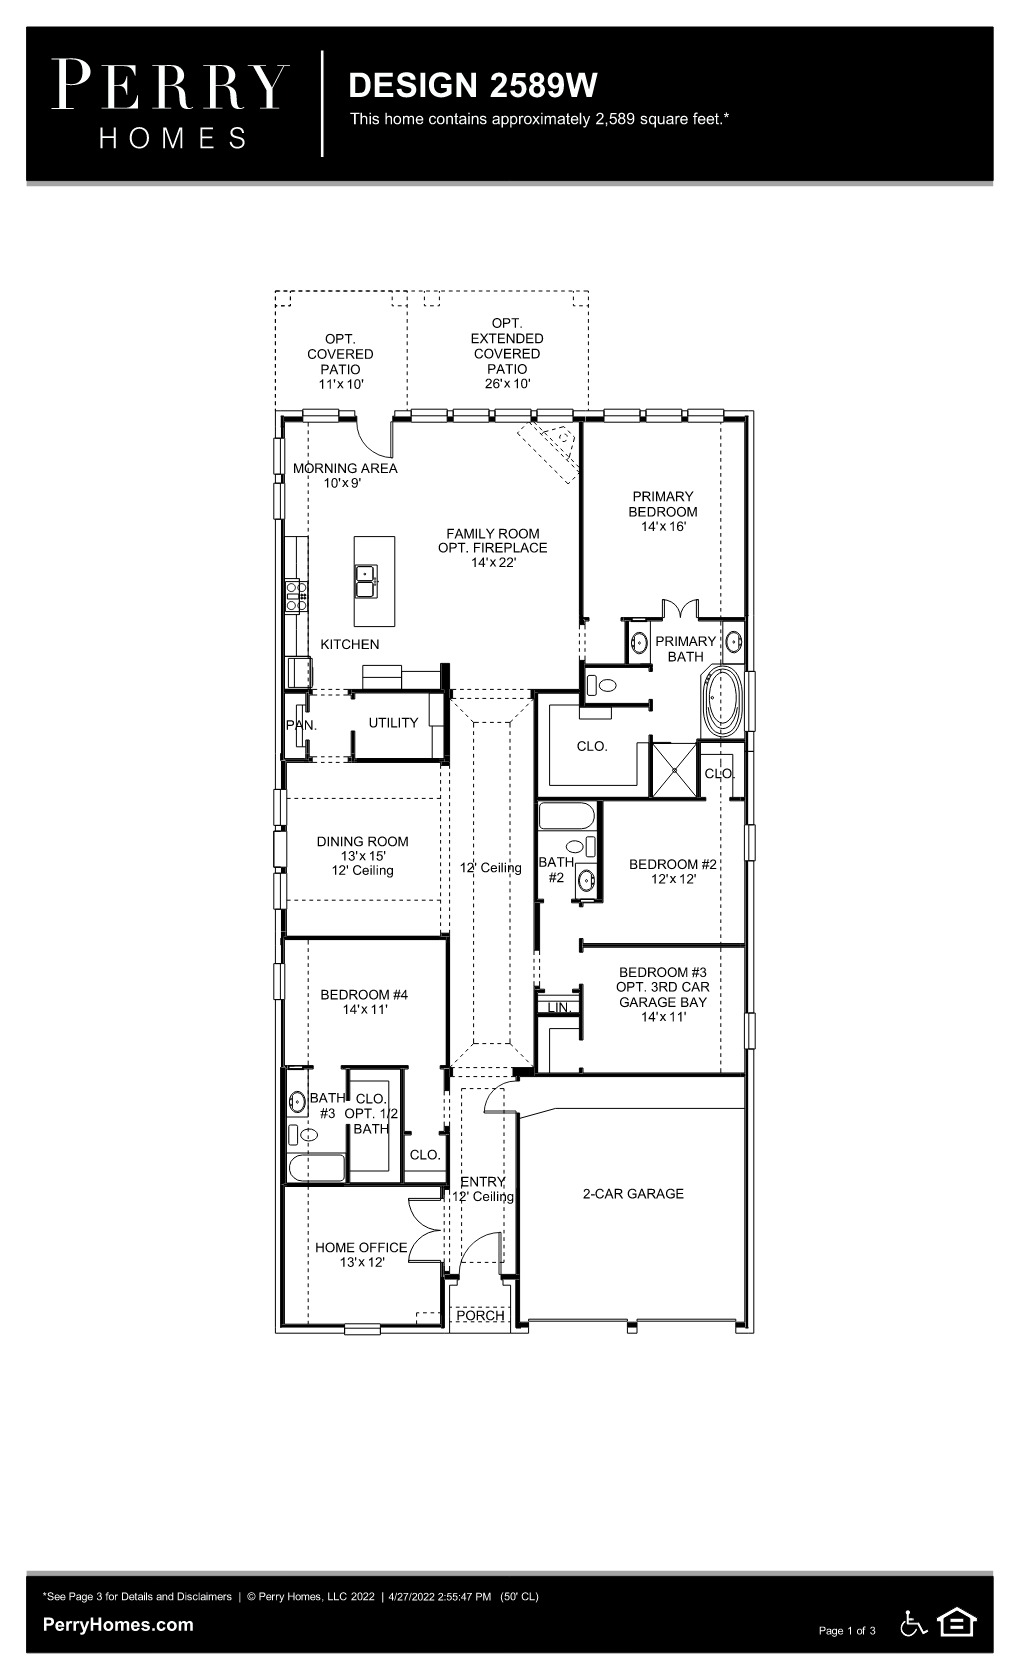 Floor Plan for 2589W